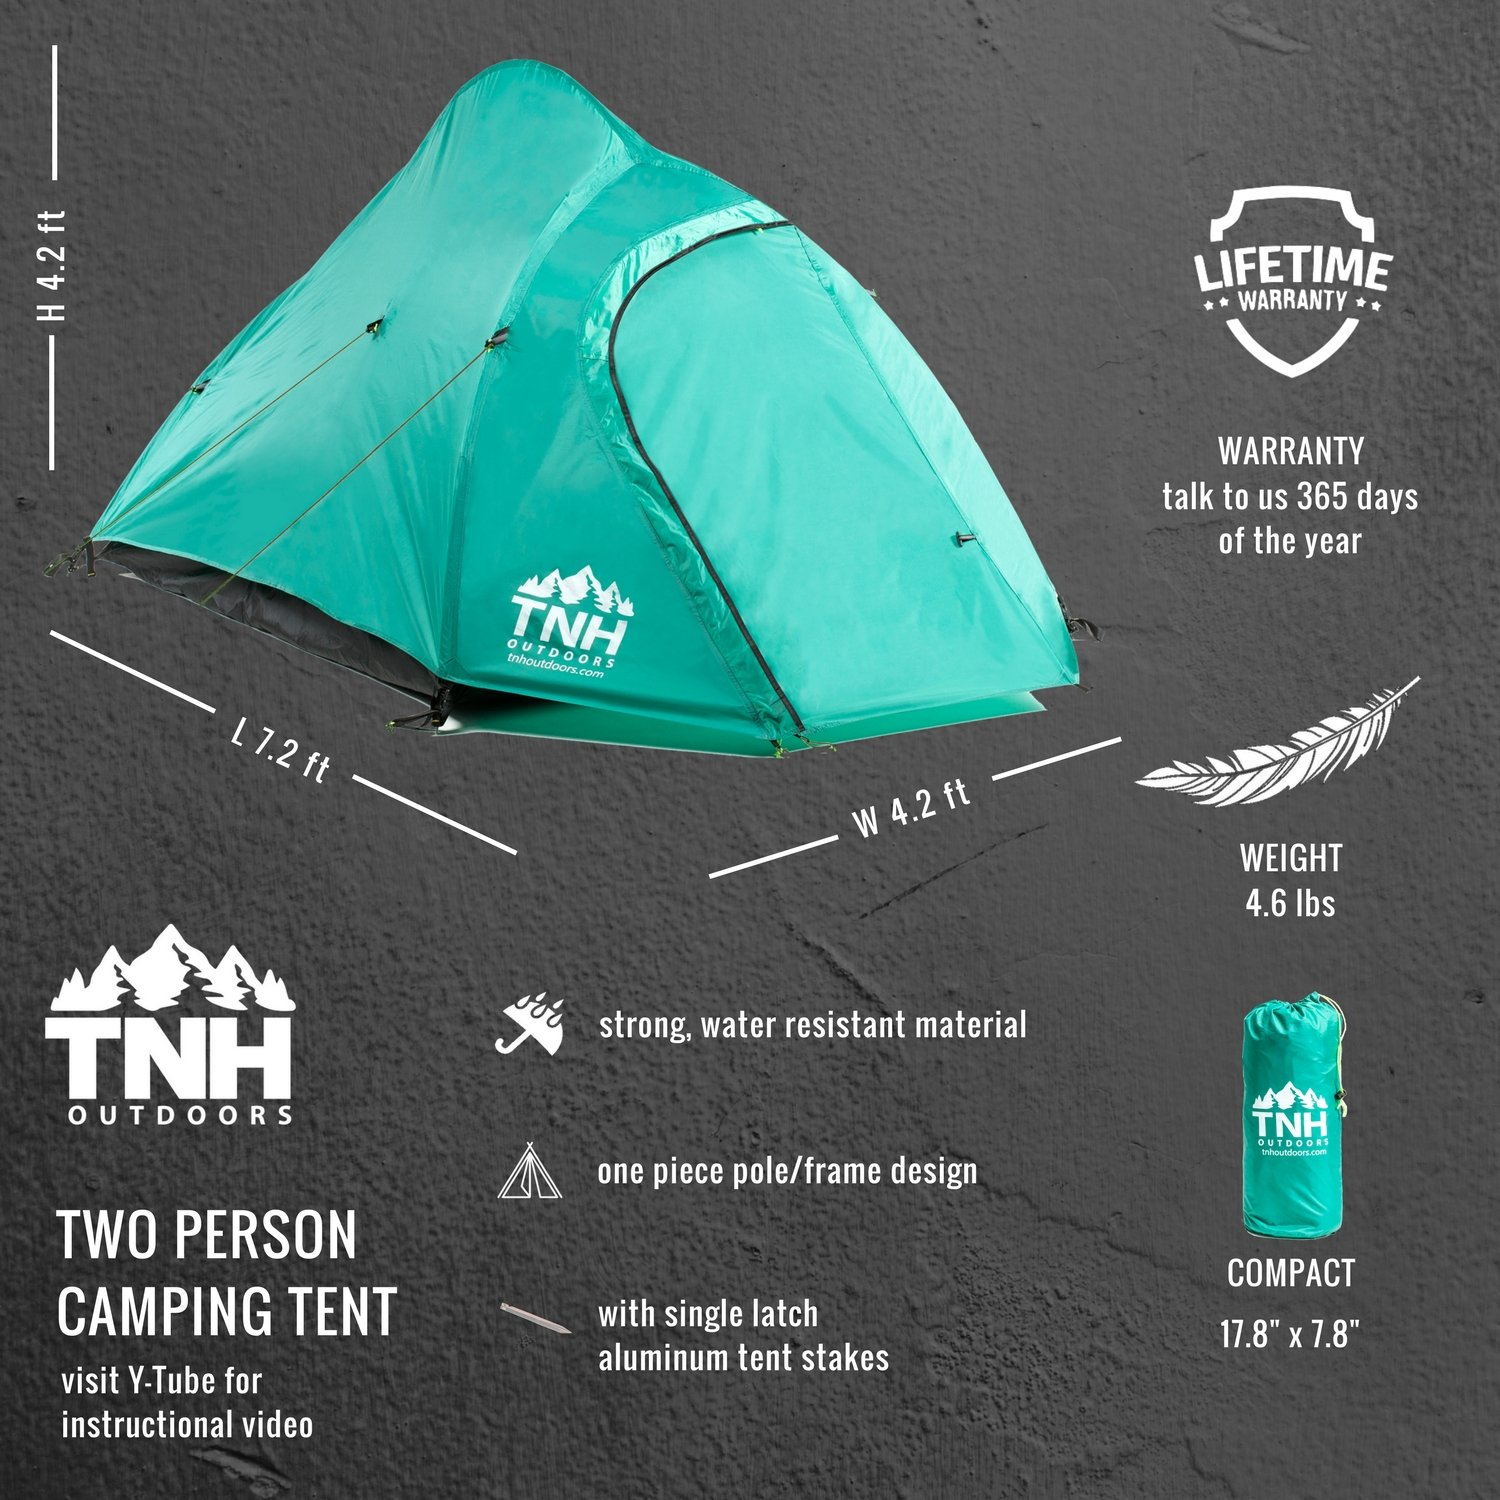 TNH Outdoors 2 Person Camping Backpacking Tent with Carry Bag and Stakes – Portable Lightweight Easy Setup Hiking Tent